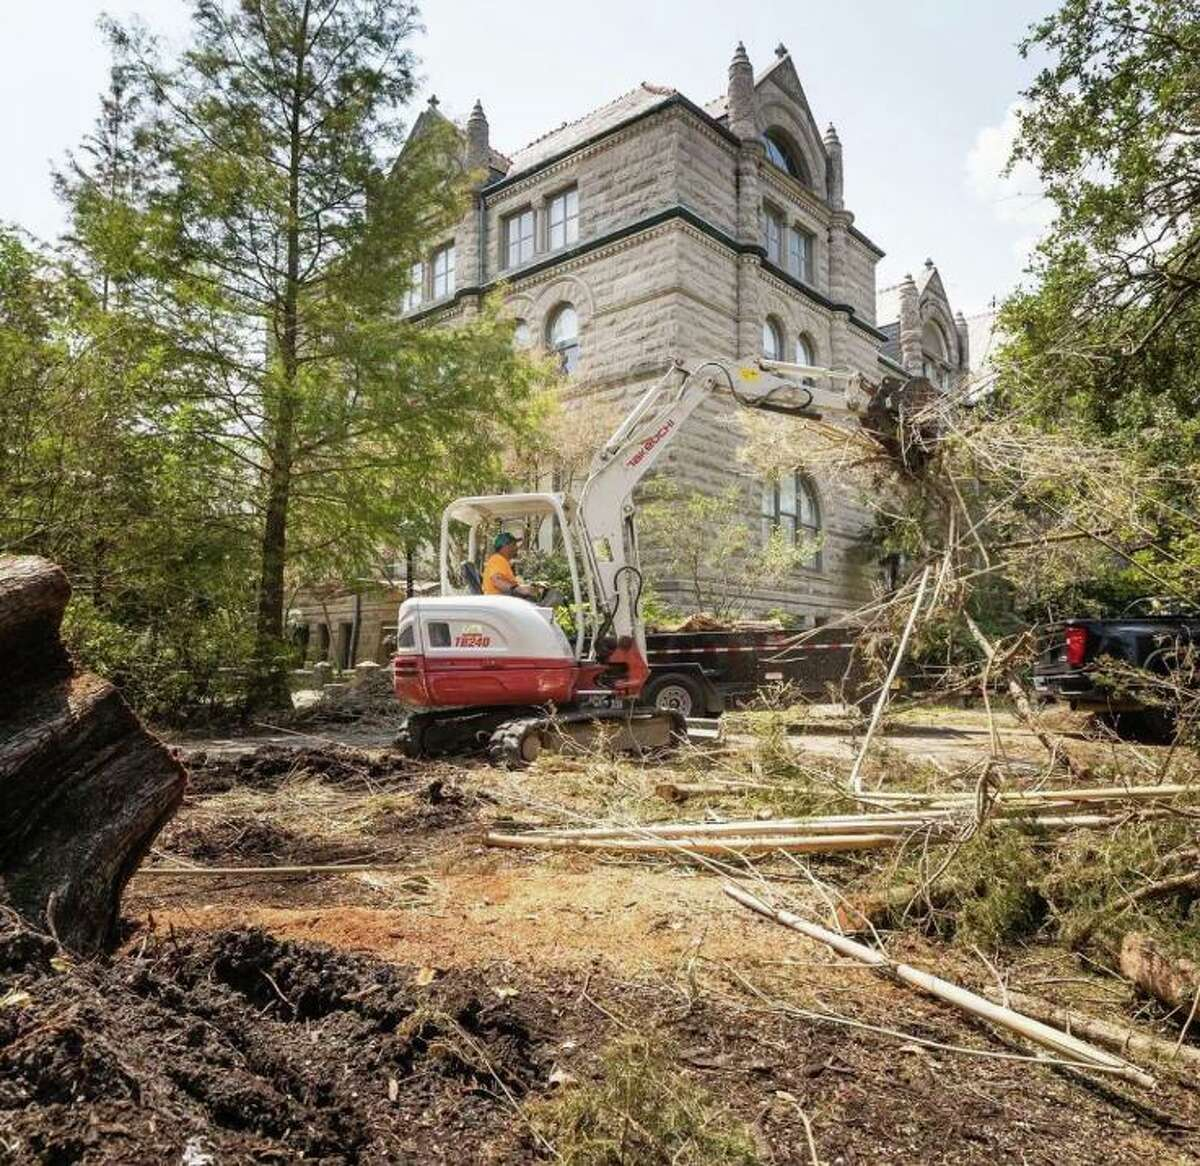 Crews remove fallen trees on campus at Tulane University in New Orleans after the devastating destruction caused by hurricane Ida.